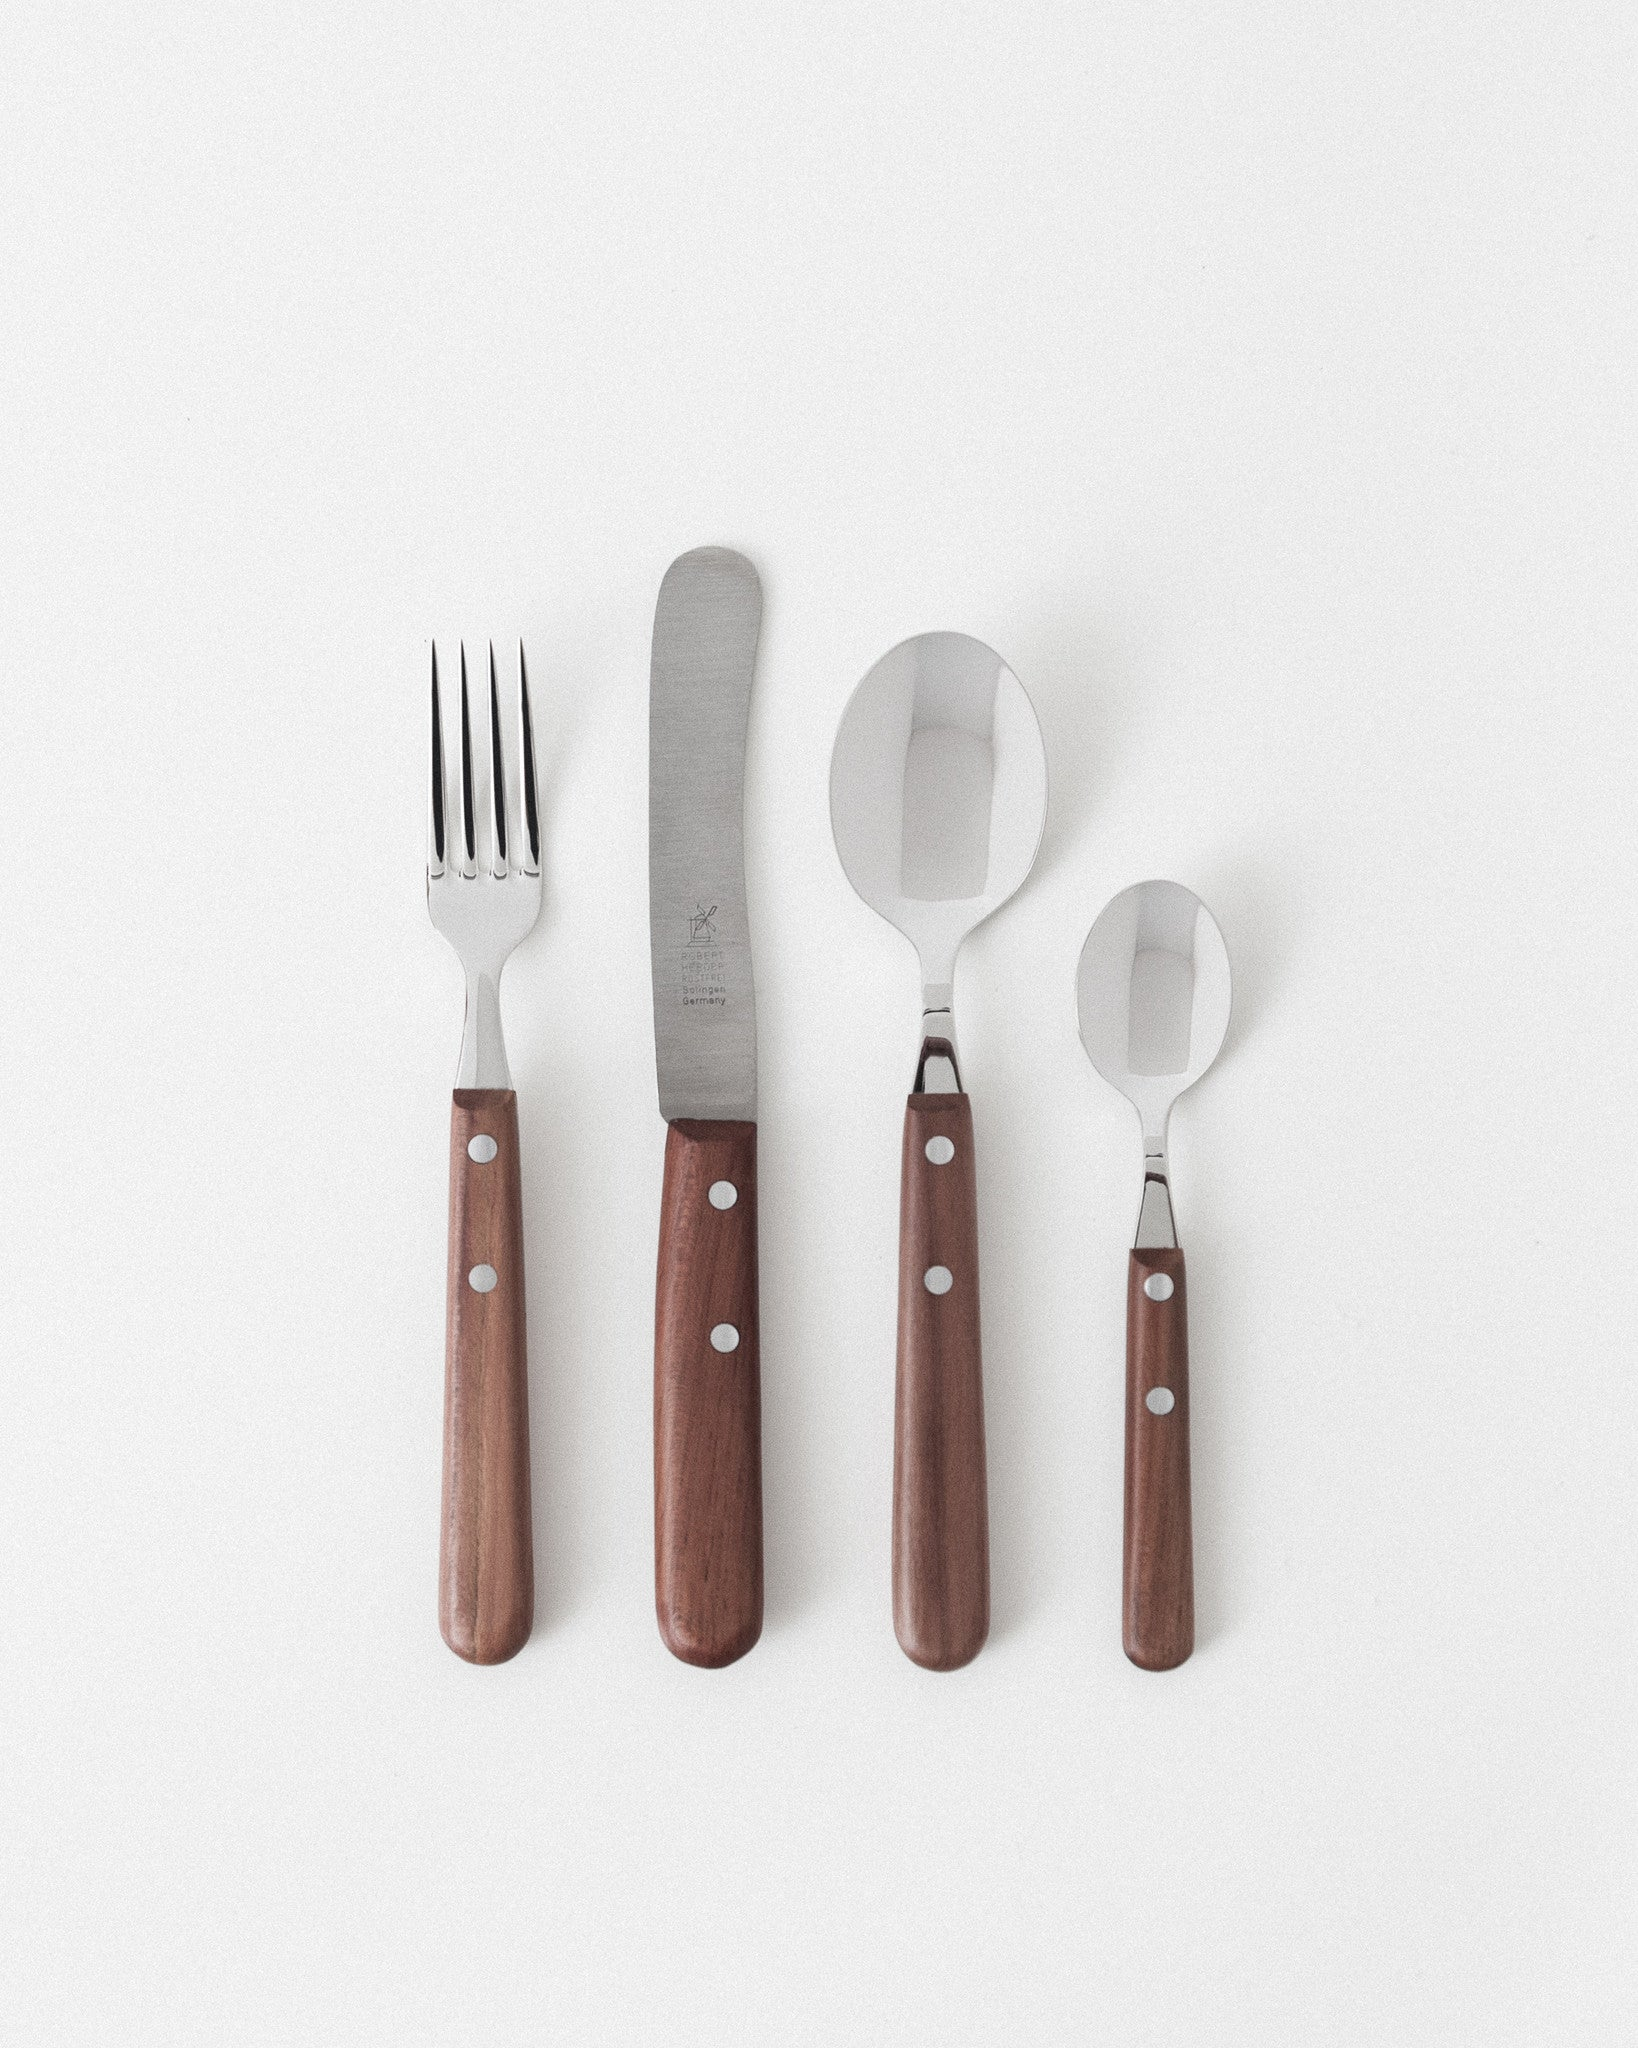 Robert Herder - Cutlery Set - Four Piece